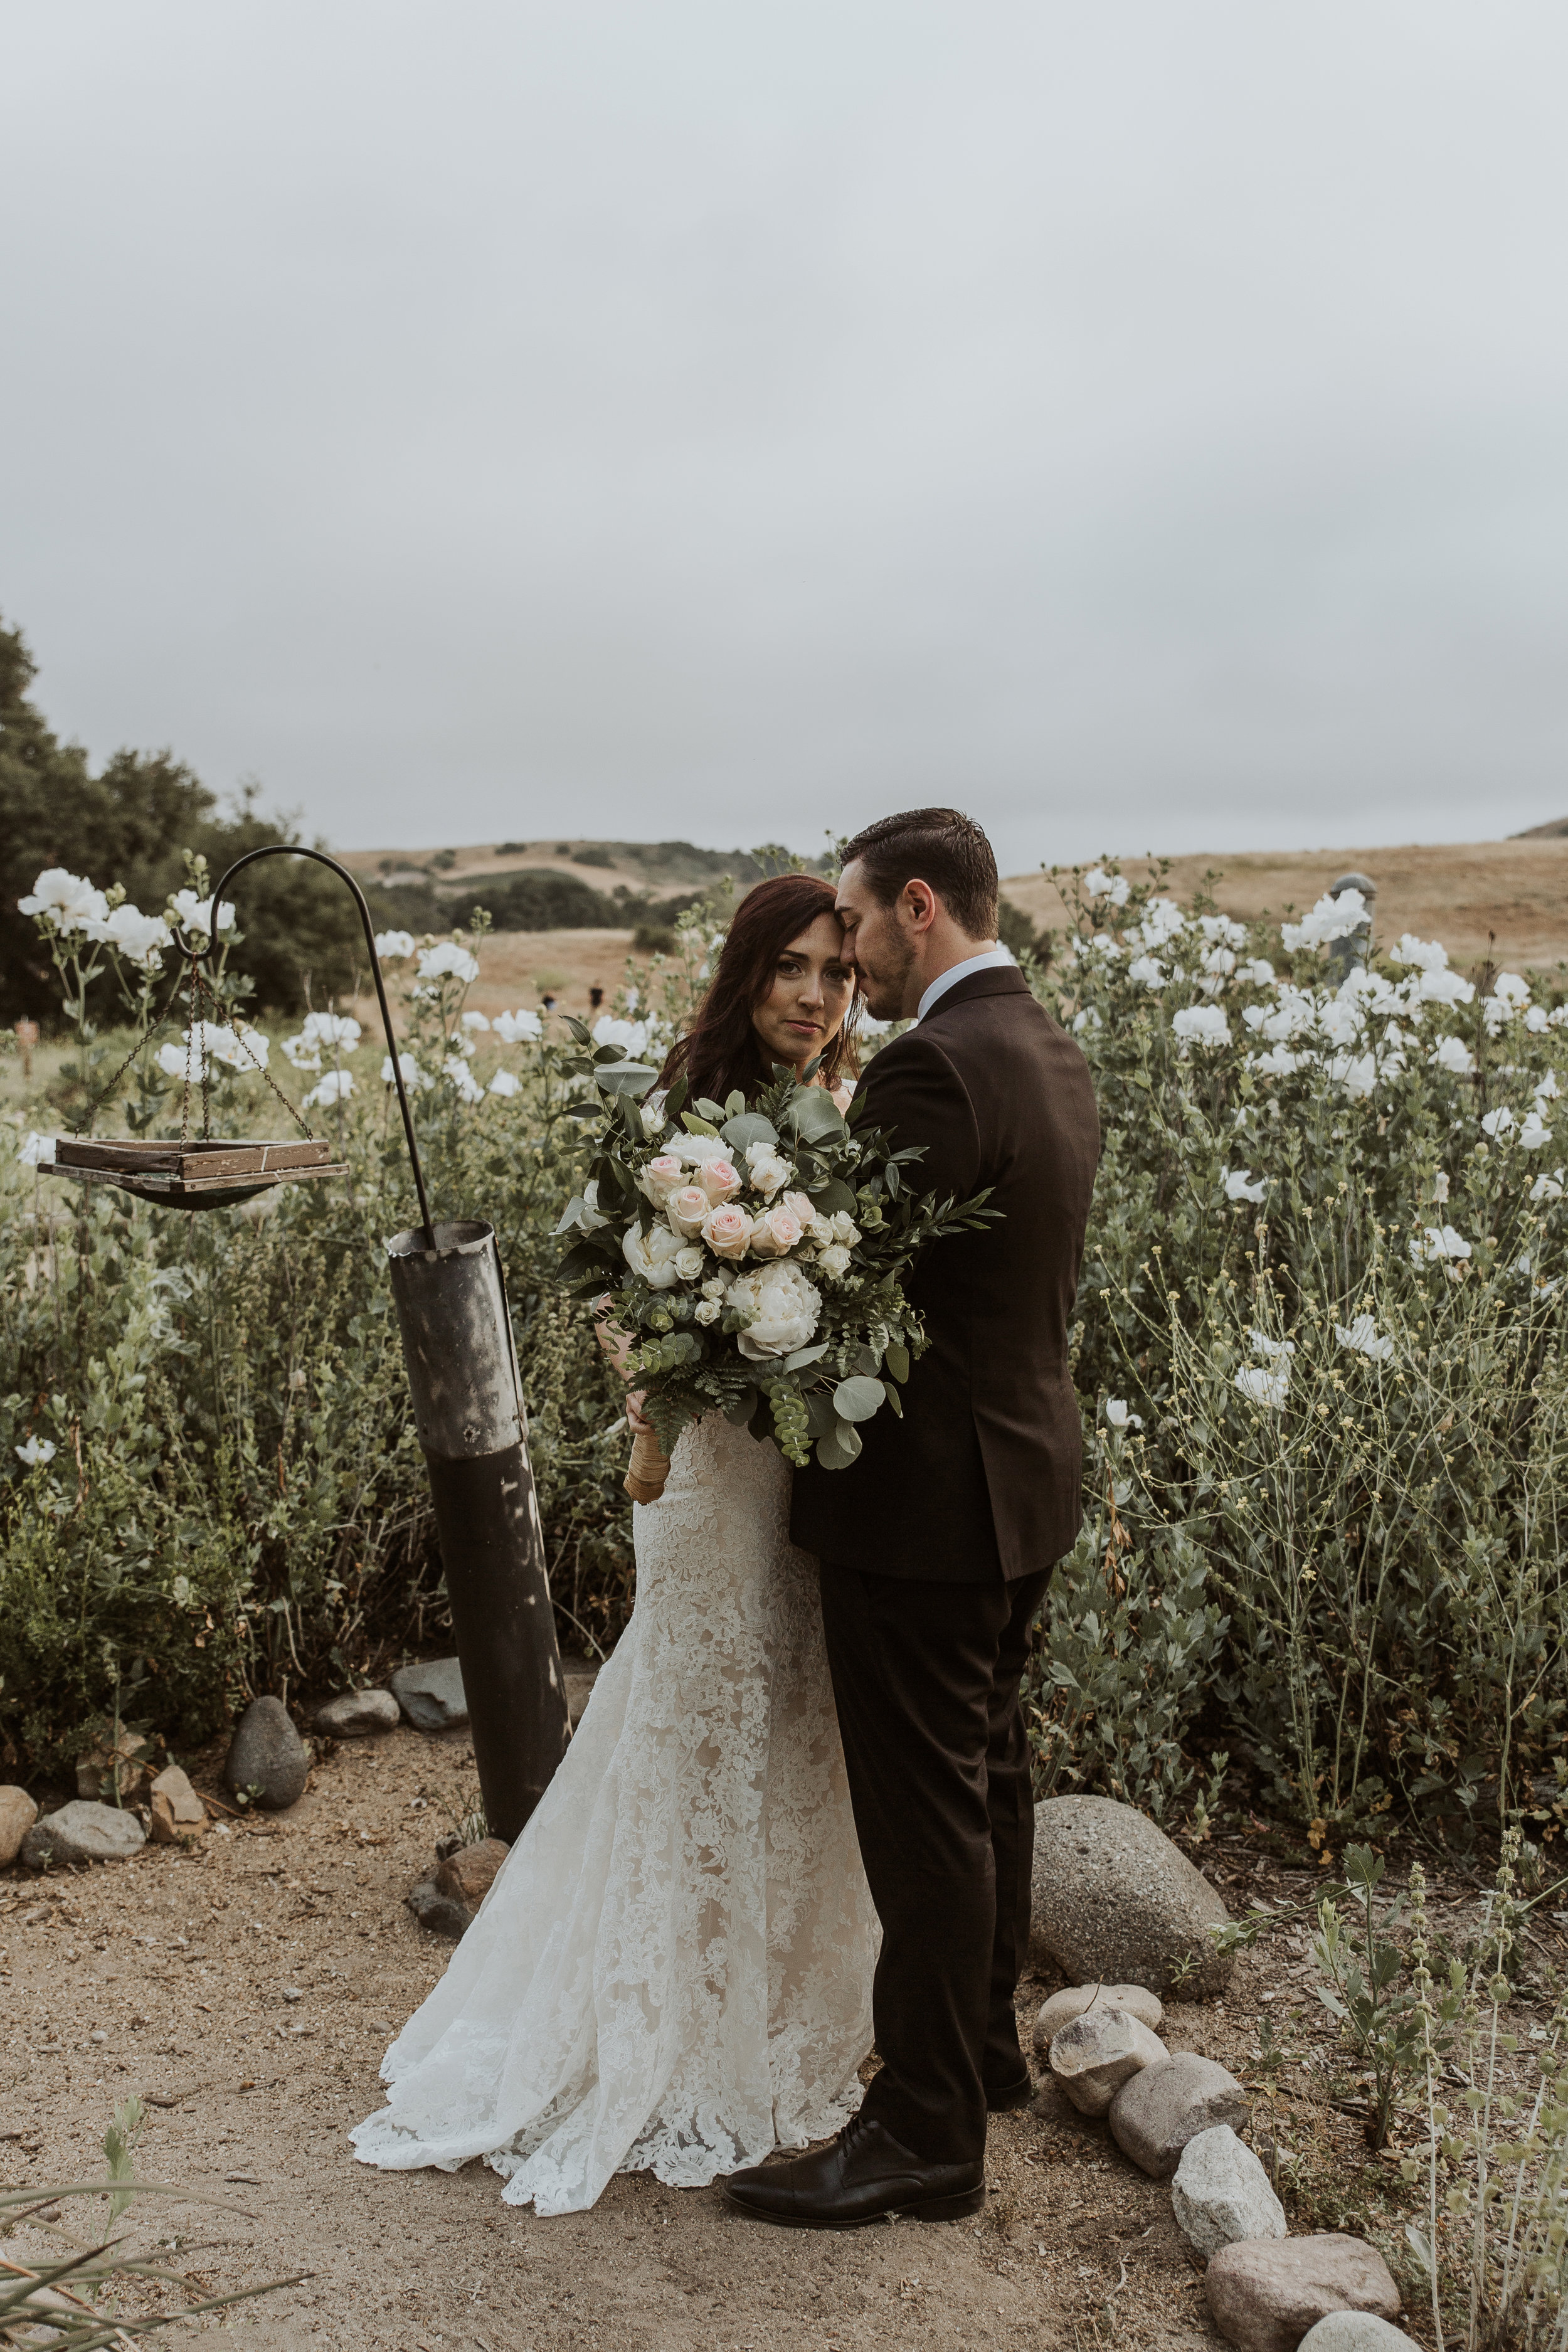 Bridal Session in Coto De Caza by Natalie Michelle Photo Co. - Orange County Wedding Photographer - Coto De Caza Bridal Photography by Natalie Michelle Photo Co.